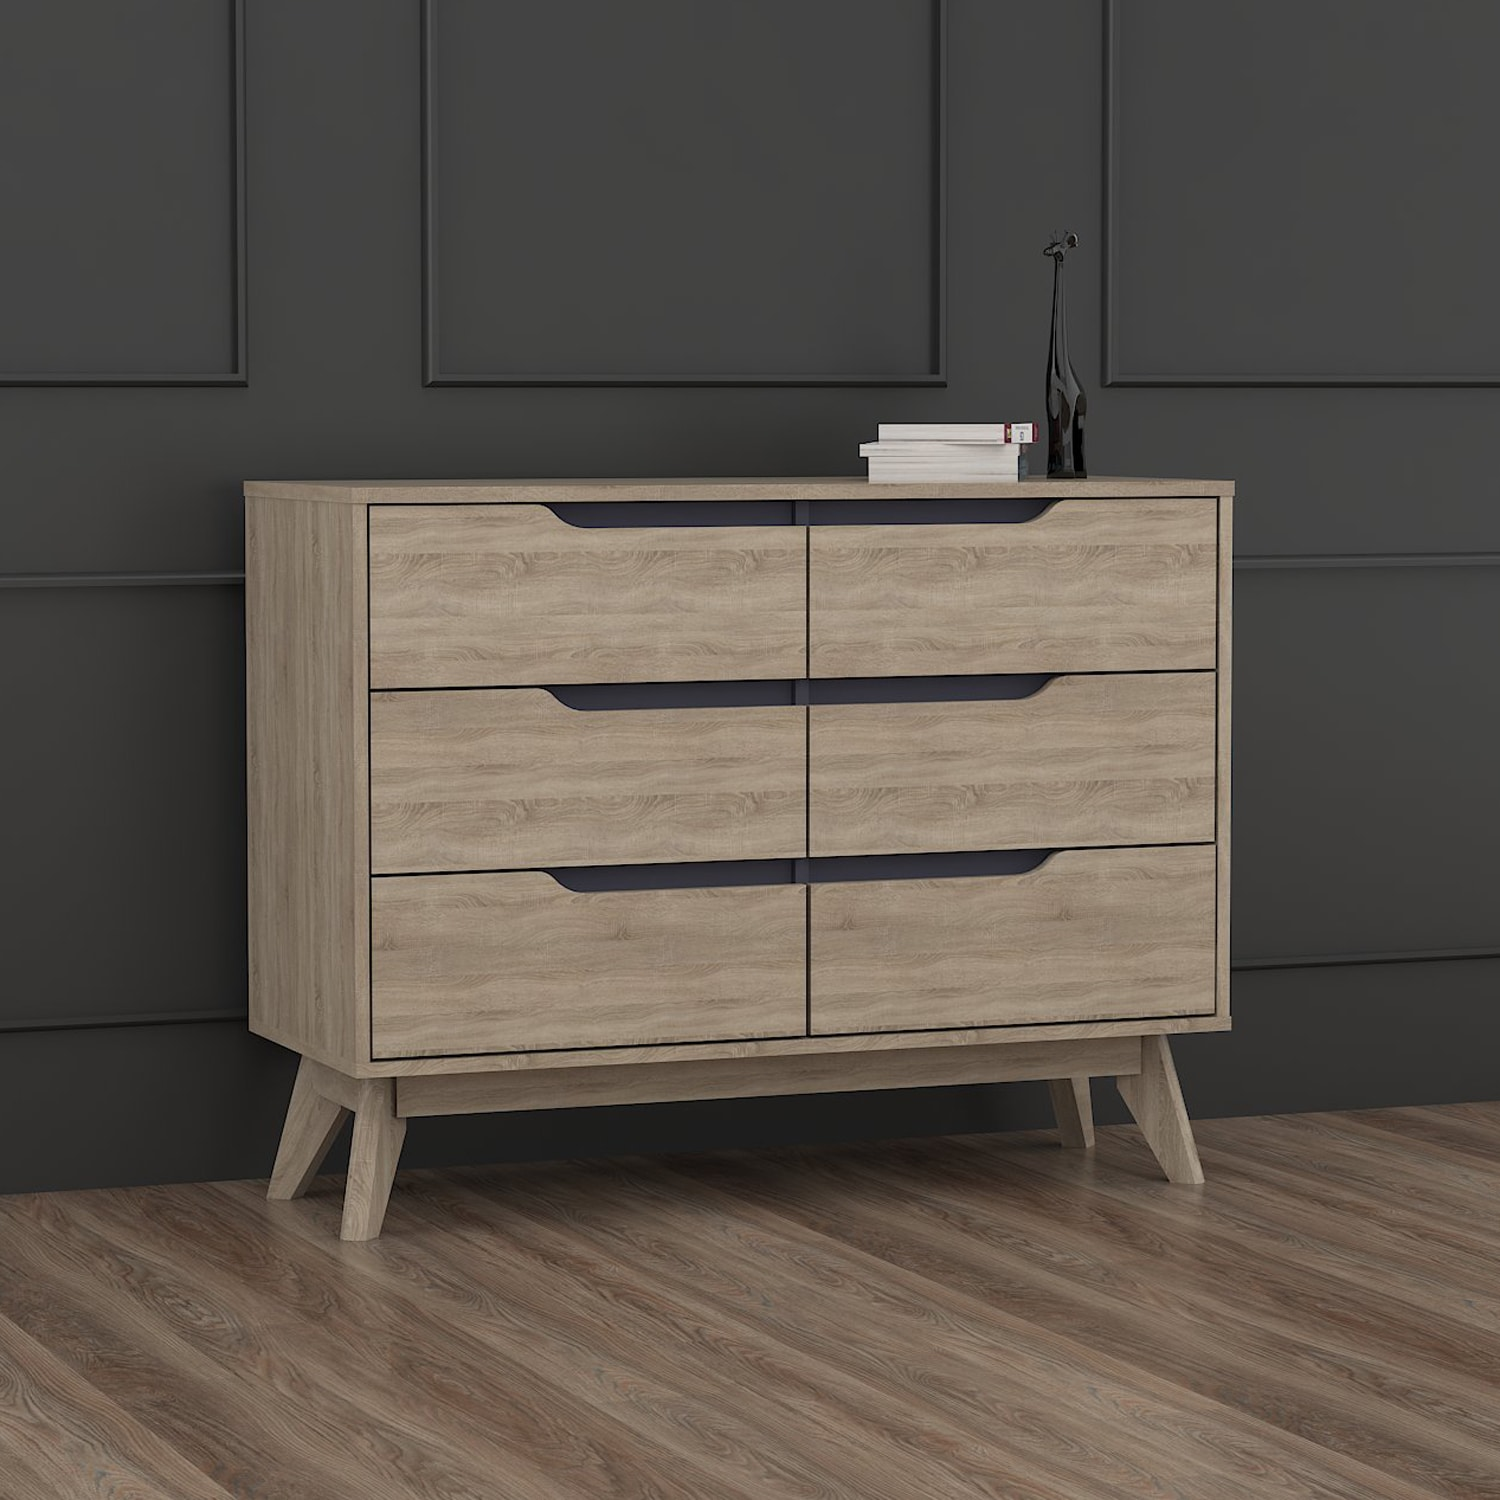 Shop Carson Carrington Eskilstuna Mid Century Oak And Grey Wood 6 Drawer Chest Free Shipping Today Overstock Com 21895323